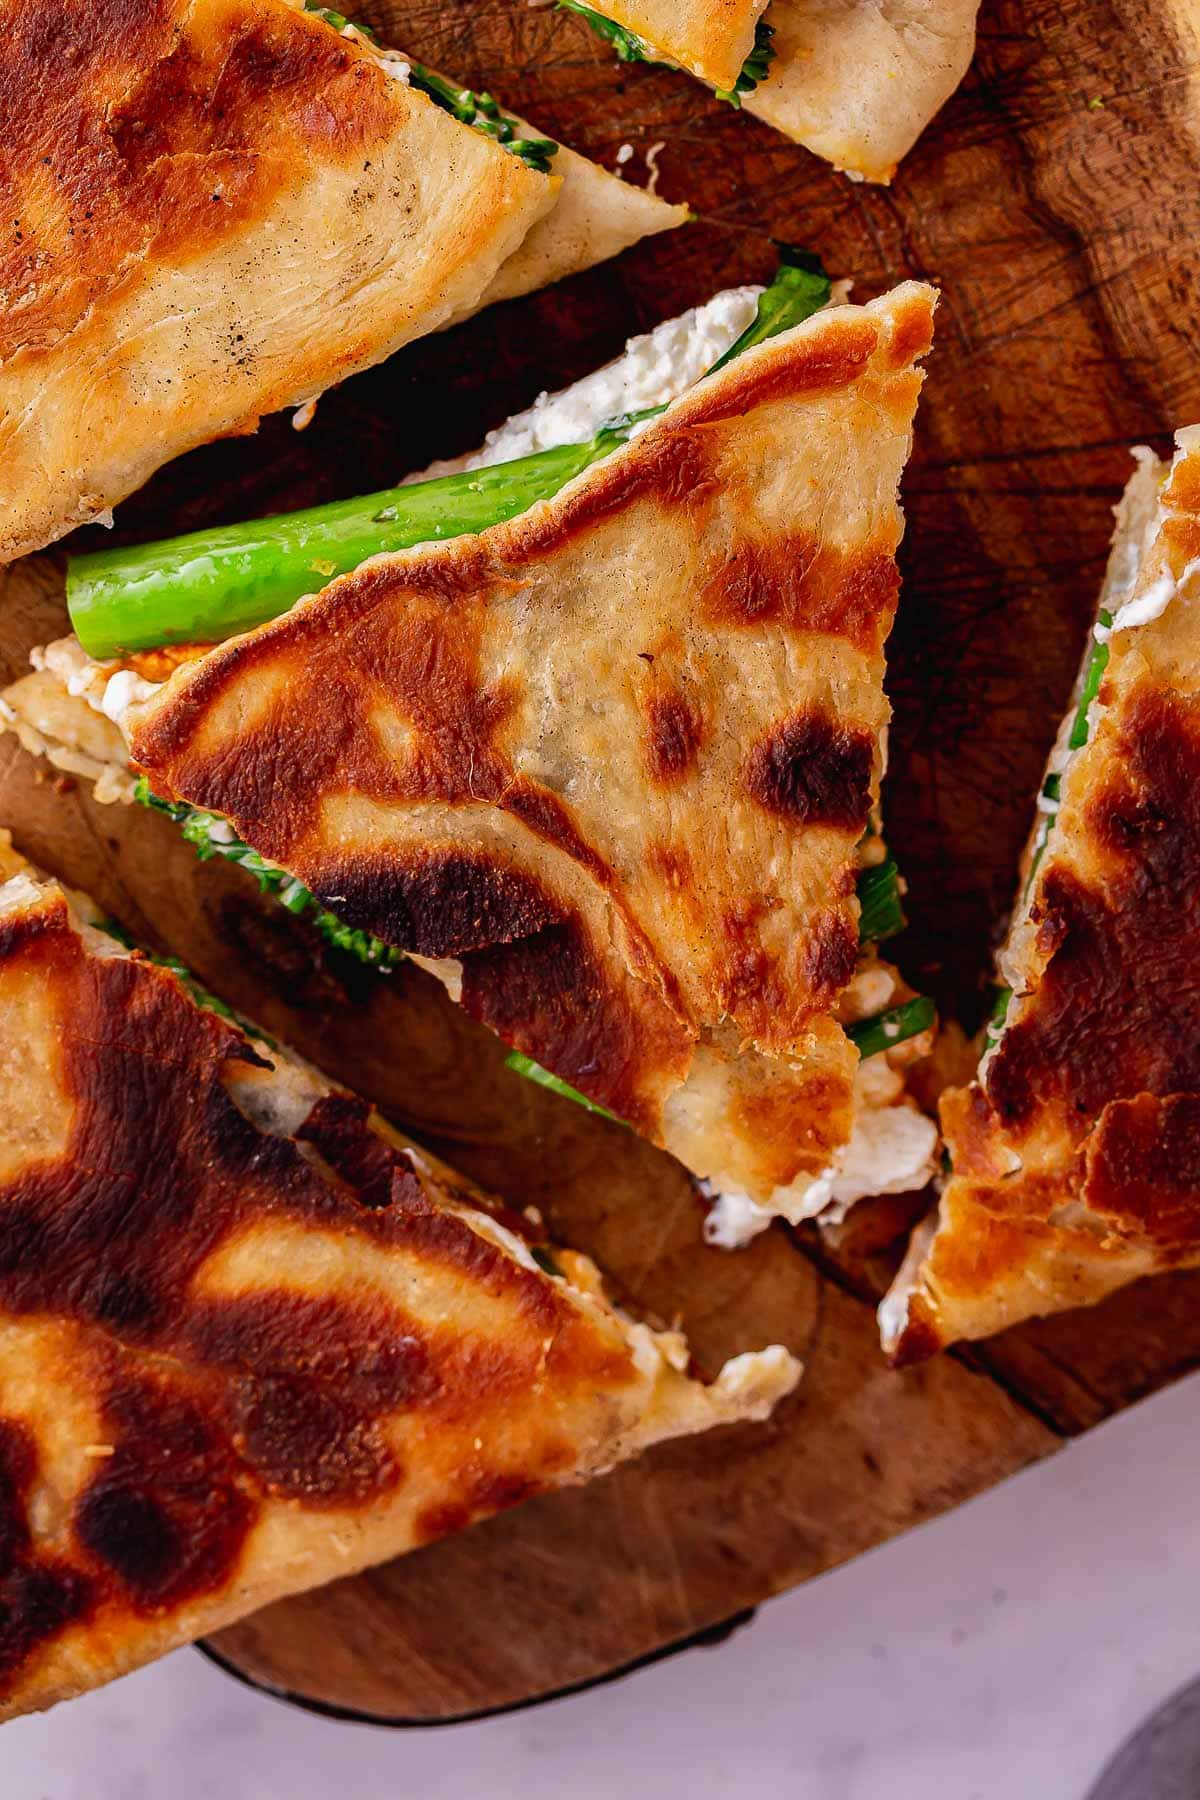 Close up of cheese broccoli flatbreads on a wooden board